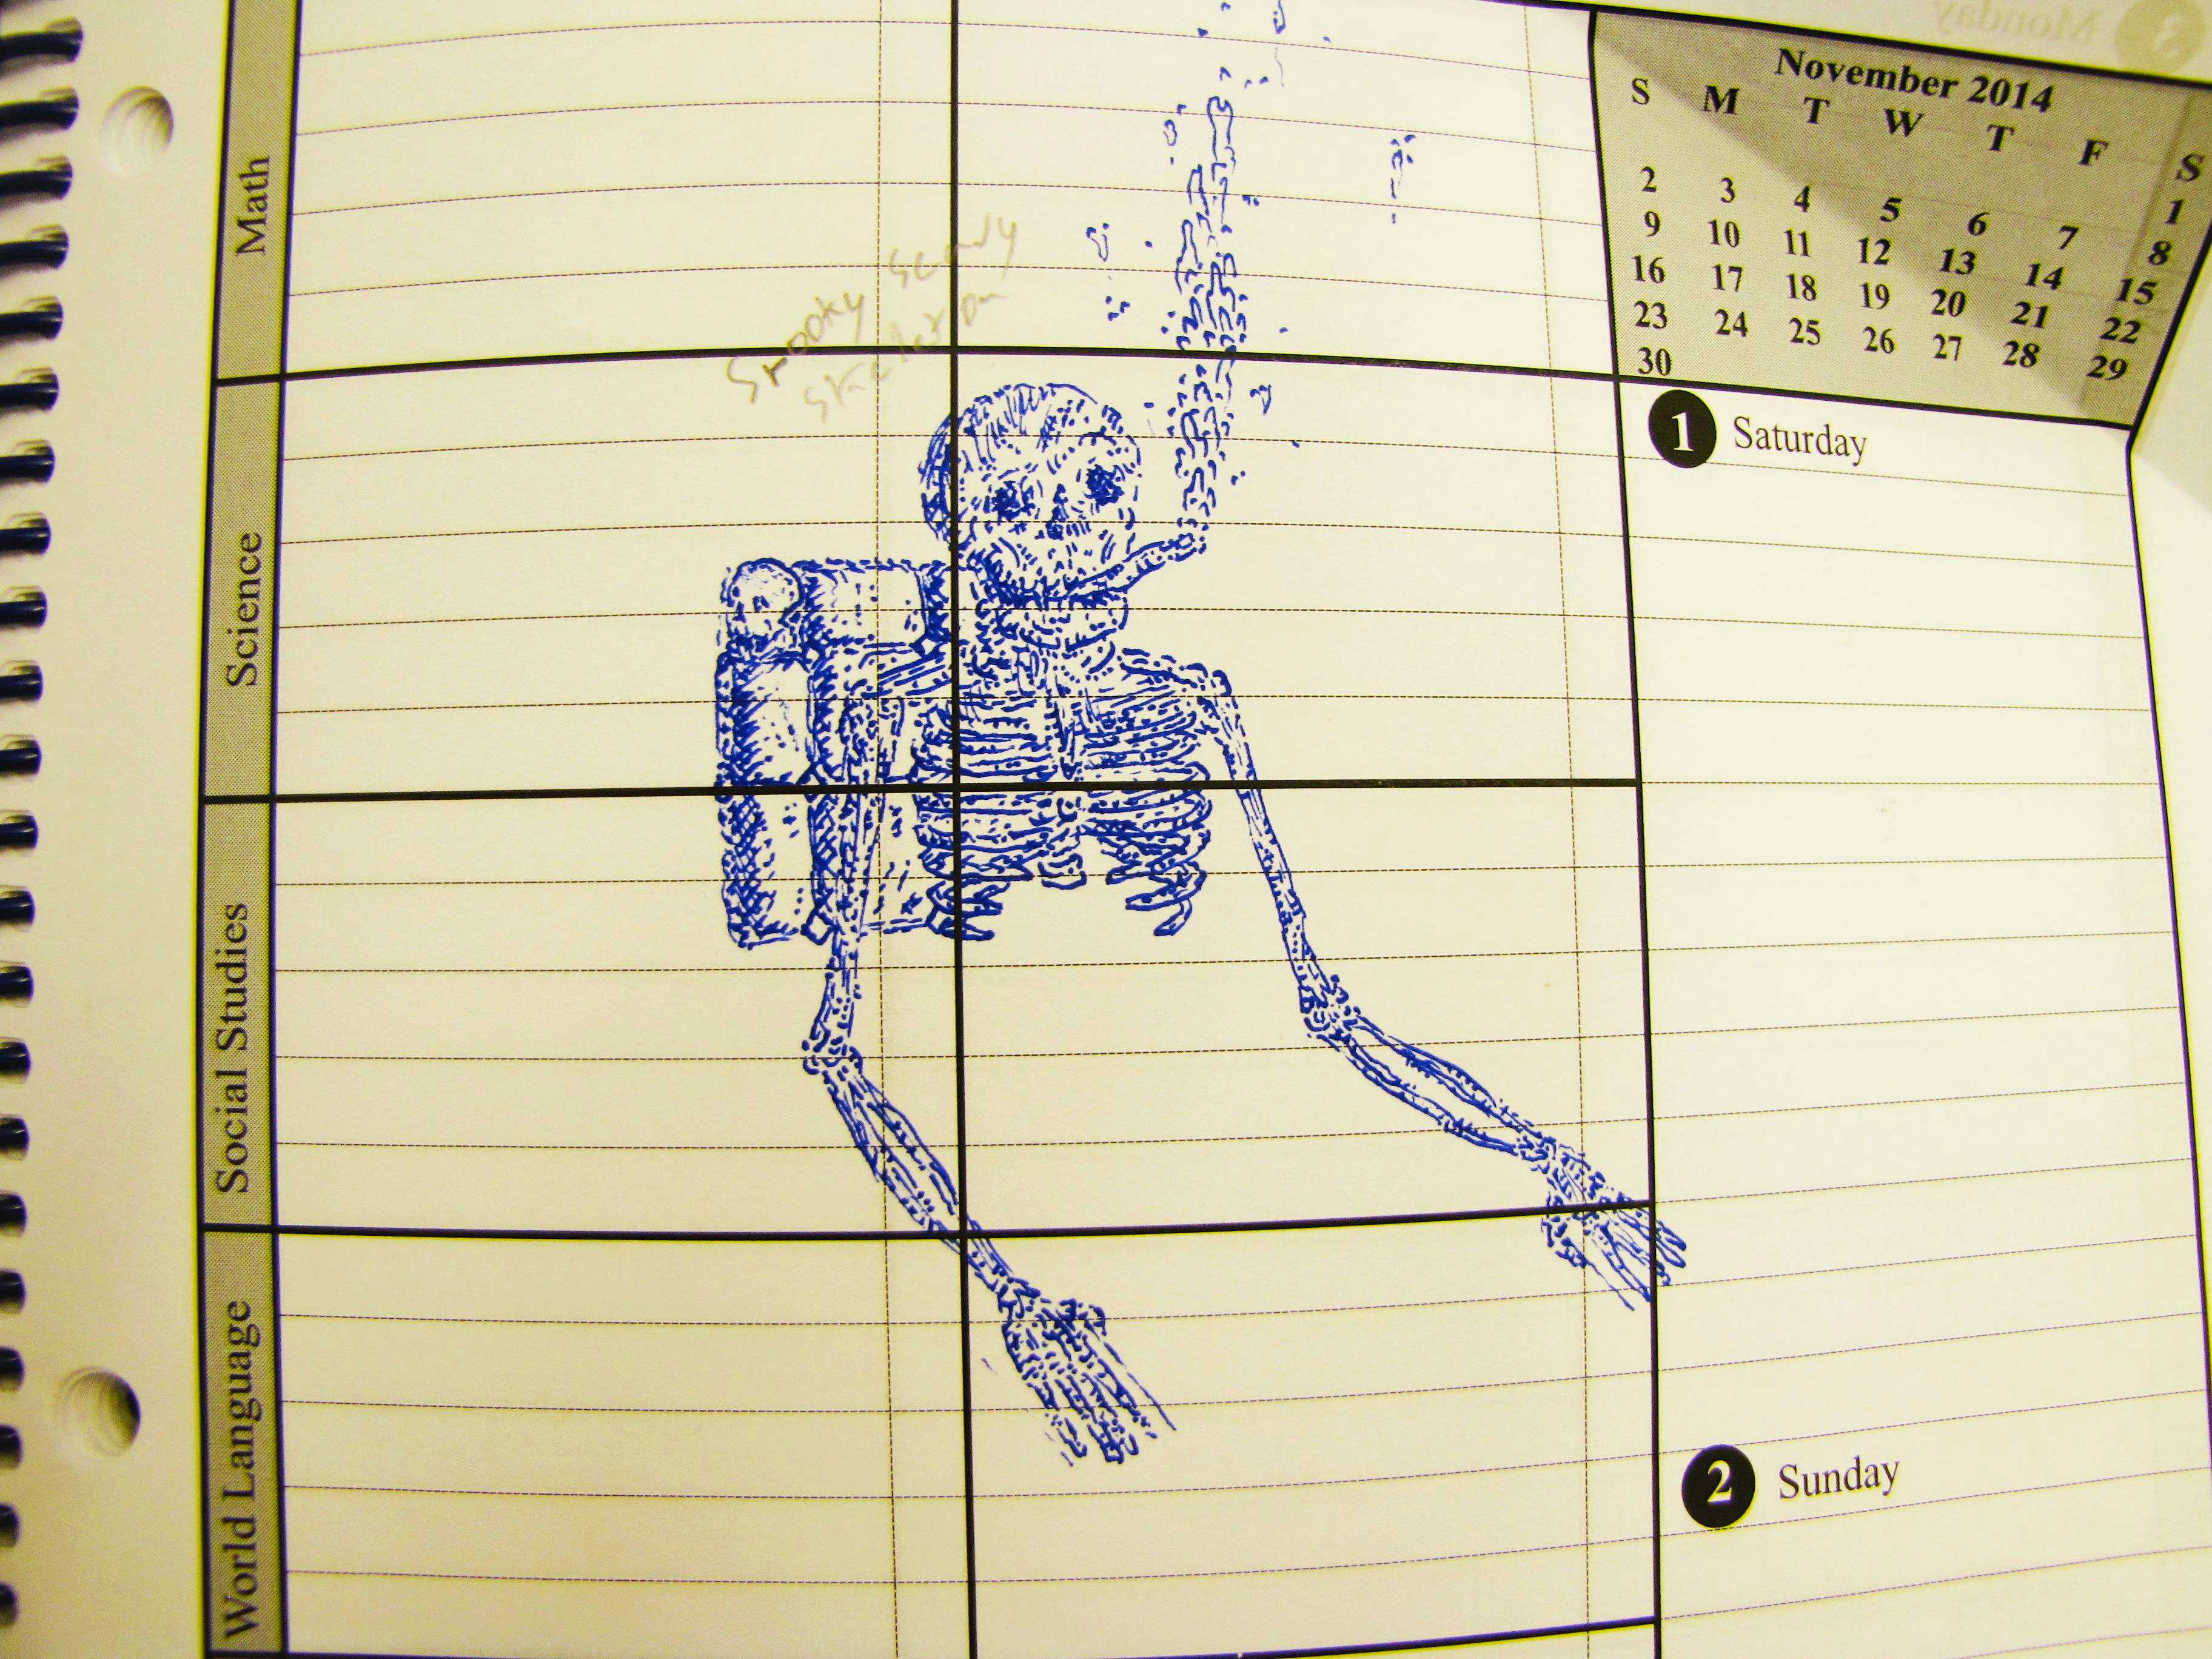 Students can share anything from long-term projects to interesting doodles.